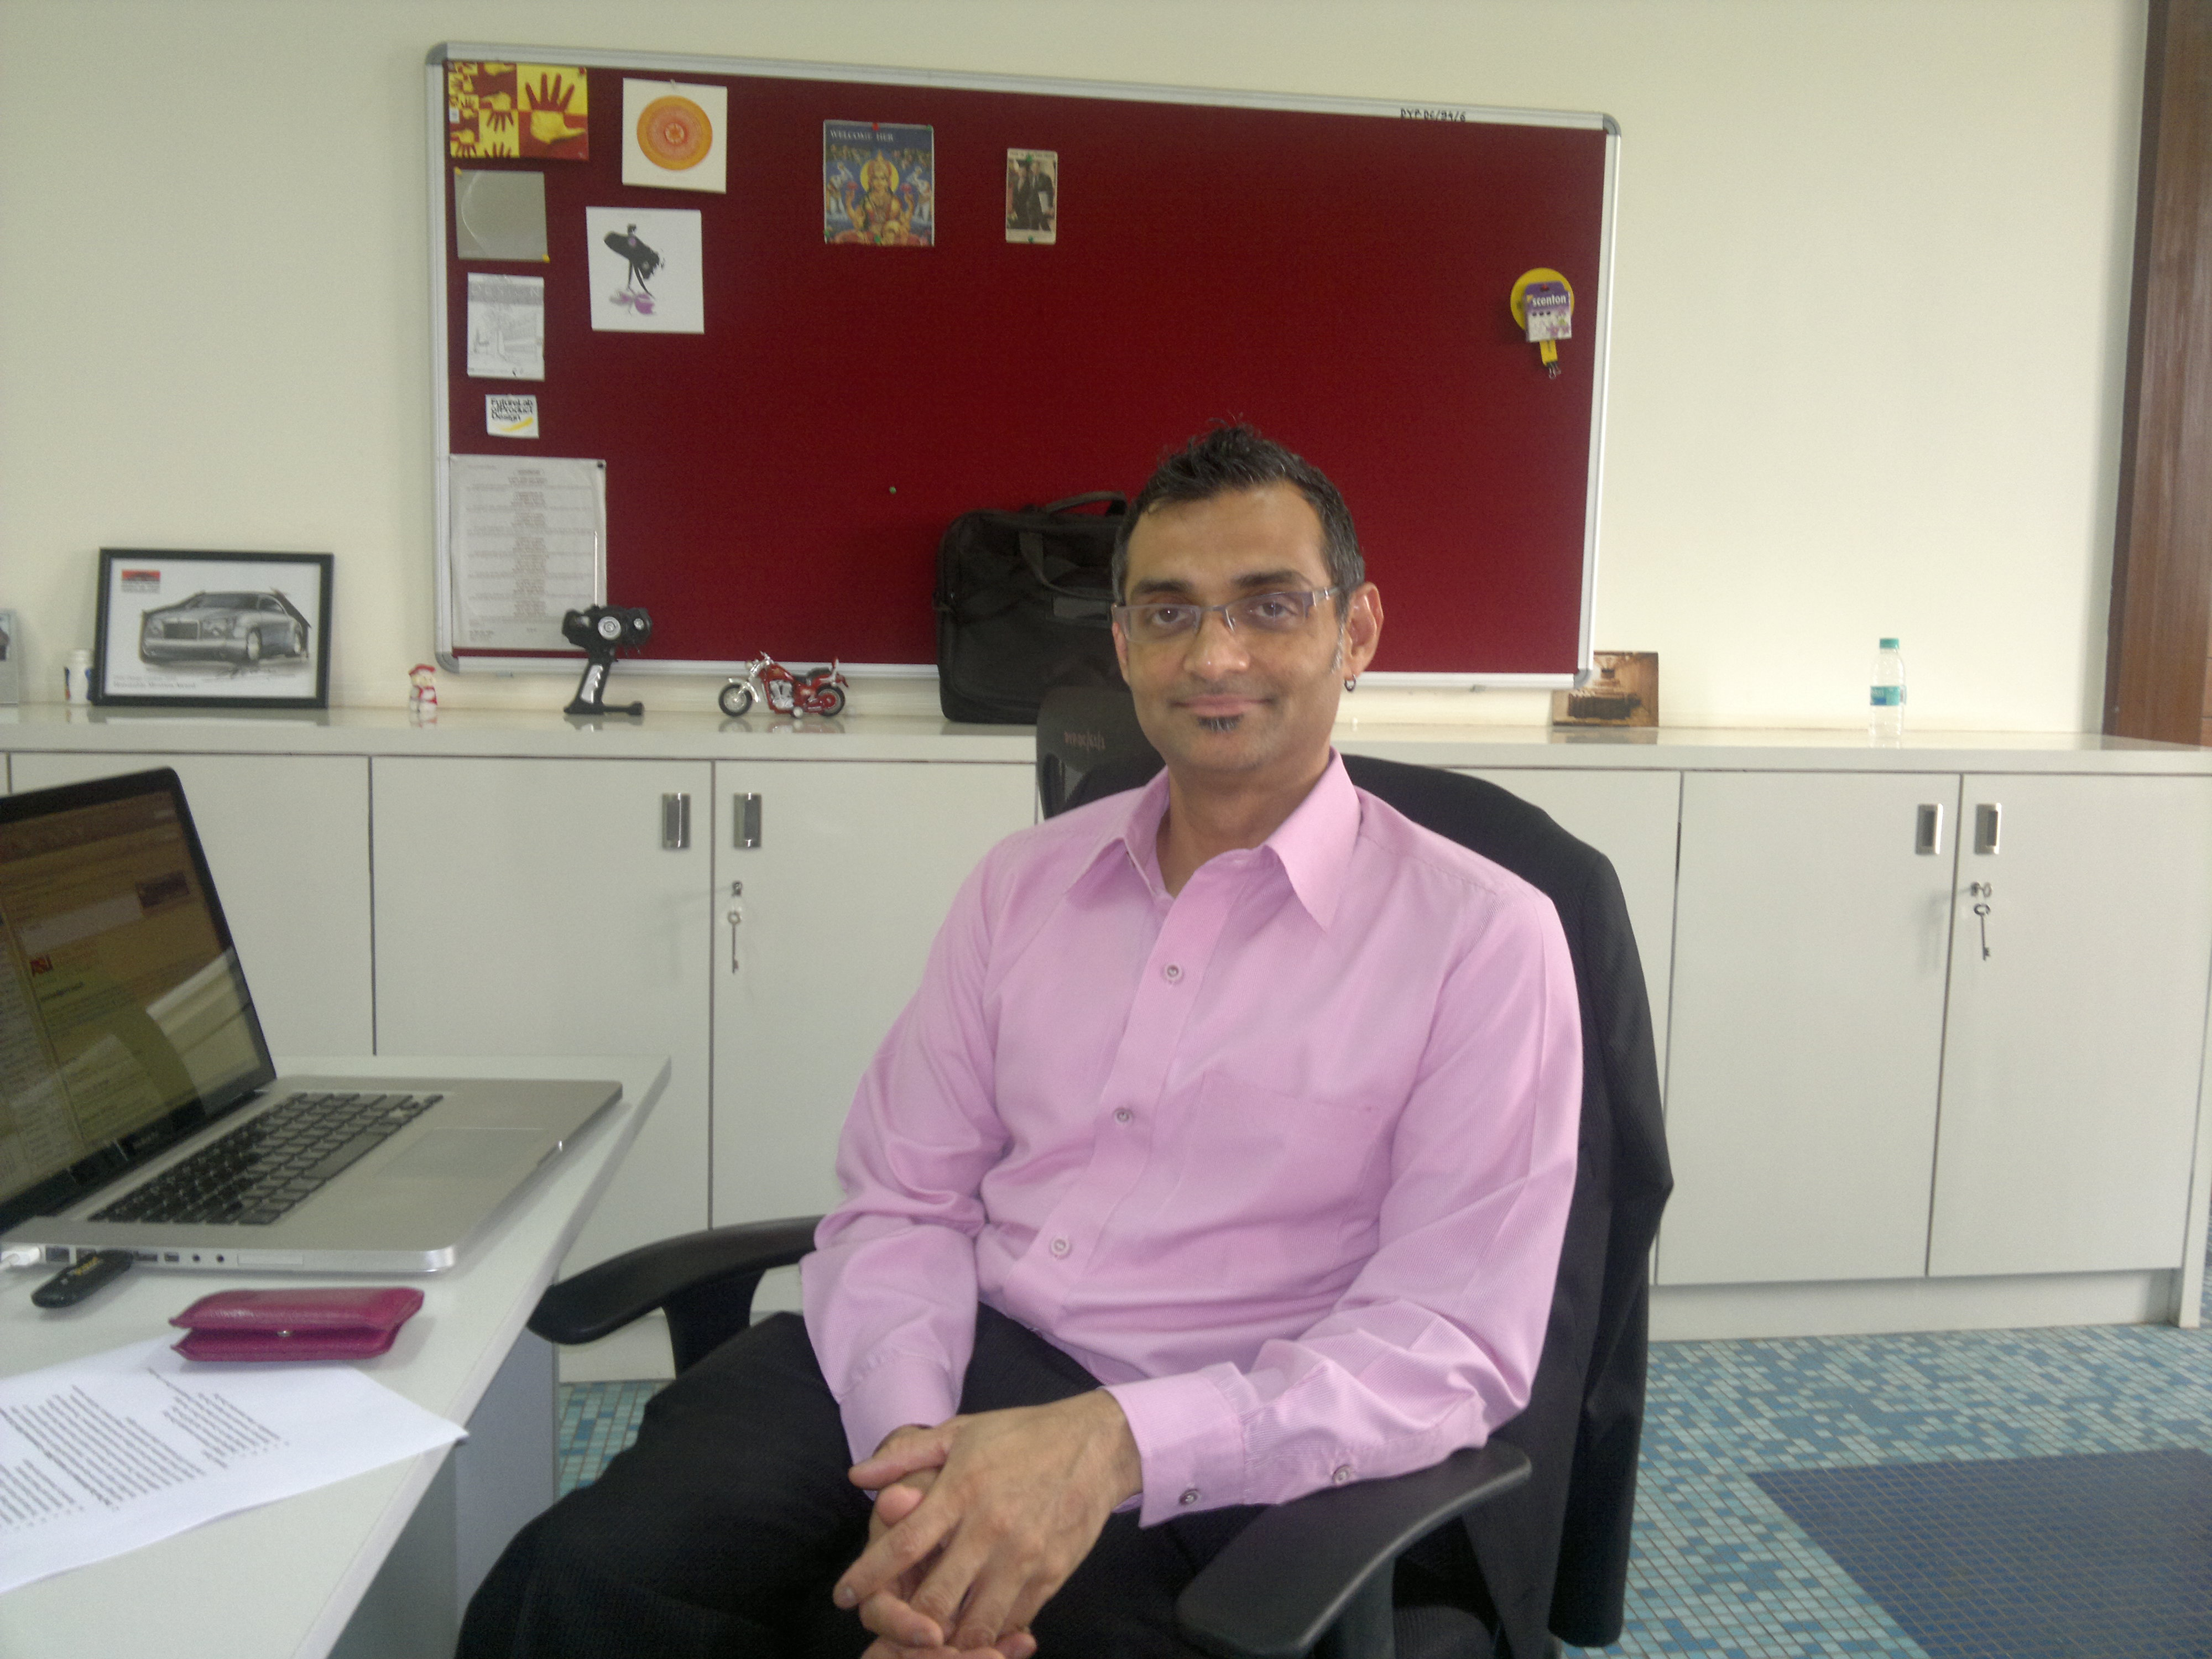 Mr. Prasad Boradkar – associate professor & coordinator, Industrial Design program, Arizona State University